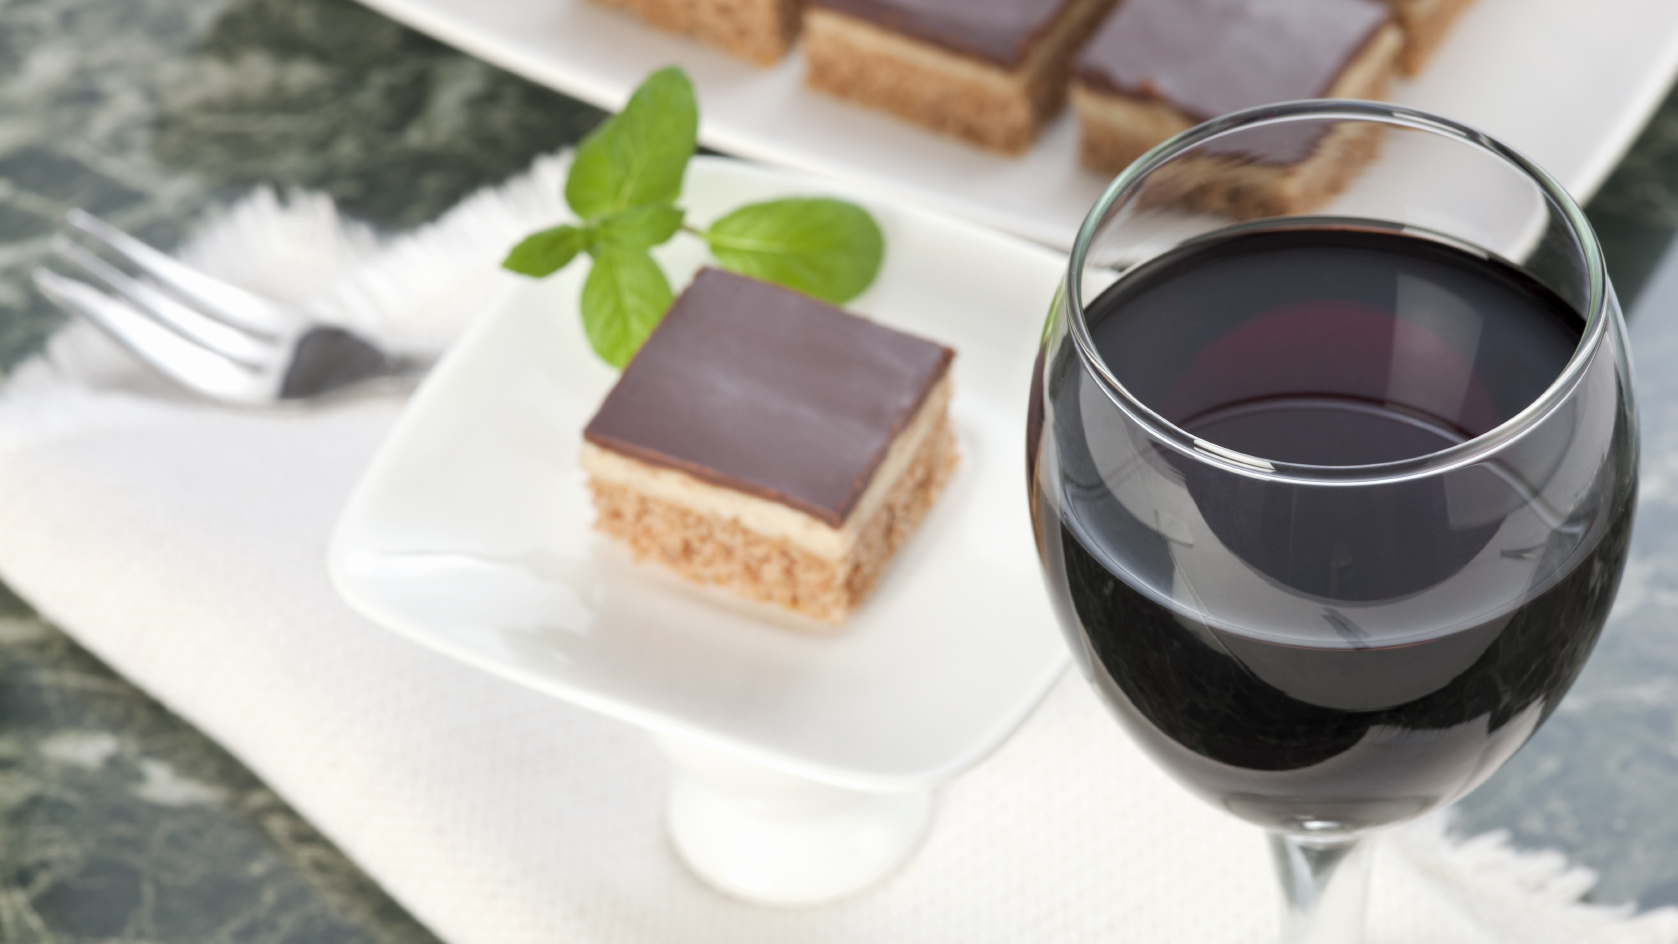 There are more than three-dozen polyphenols in red wine that could be beneficial. But resveratrol may not have much influence on our health. Photo: iStockphoto